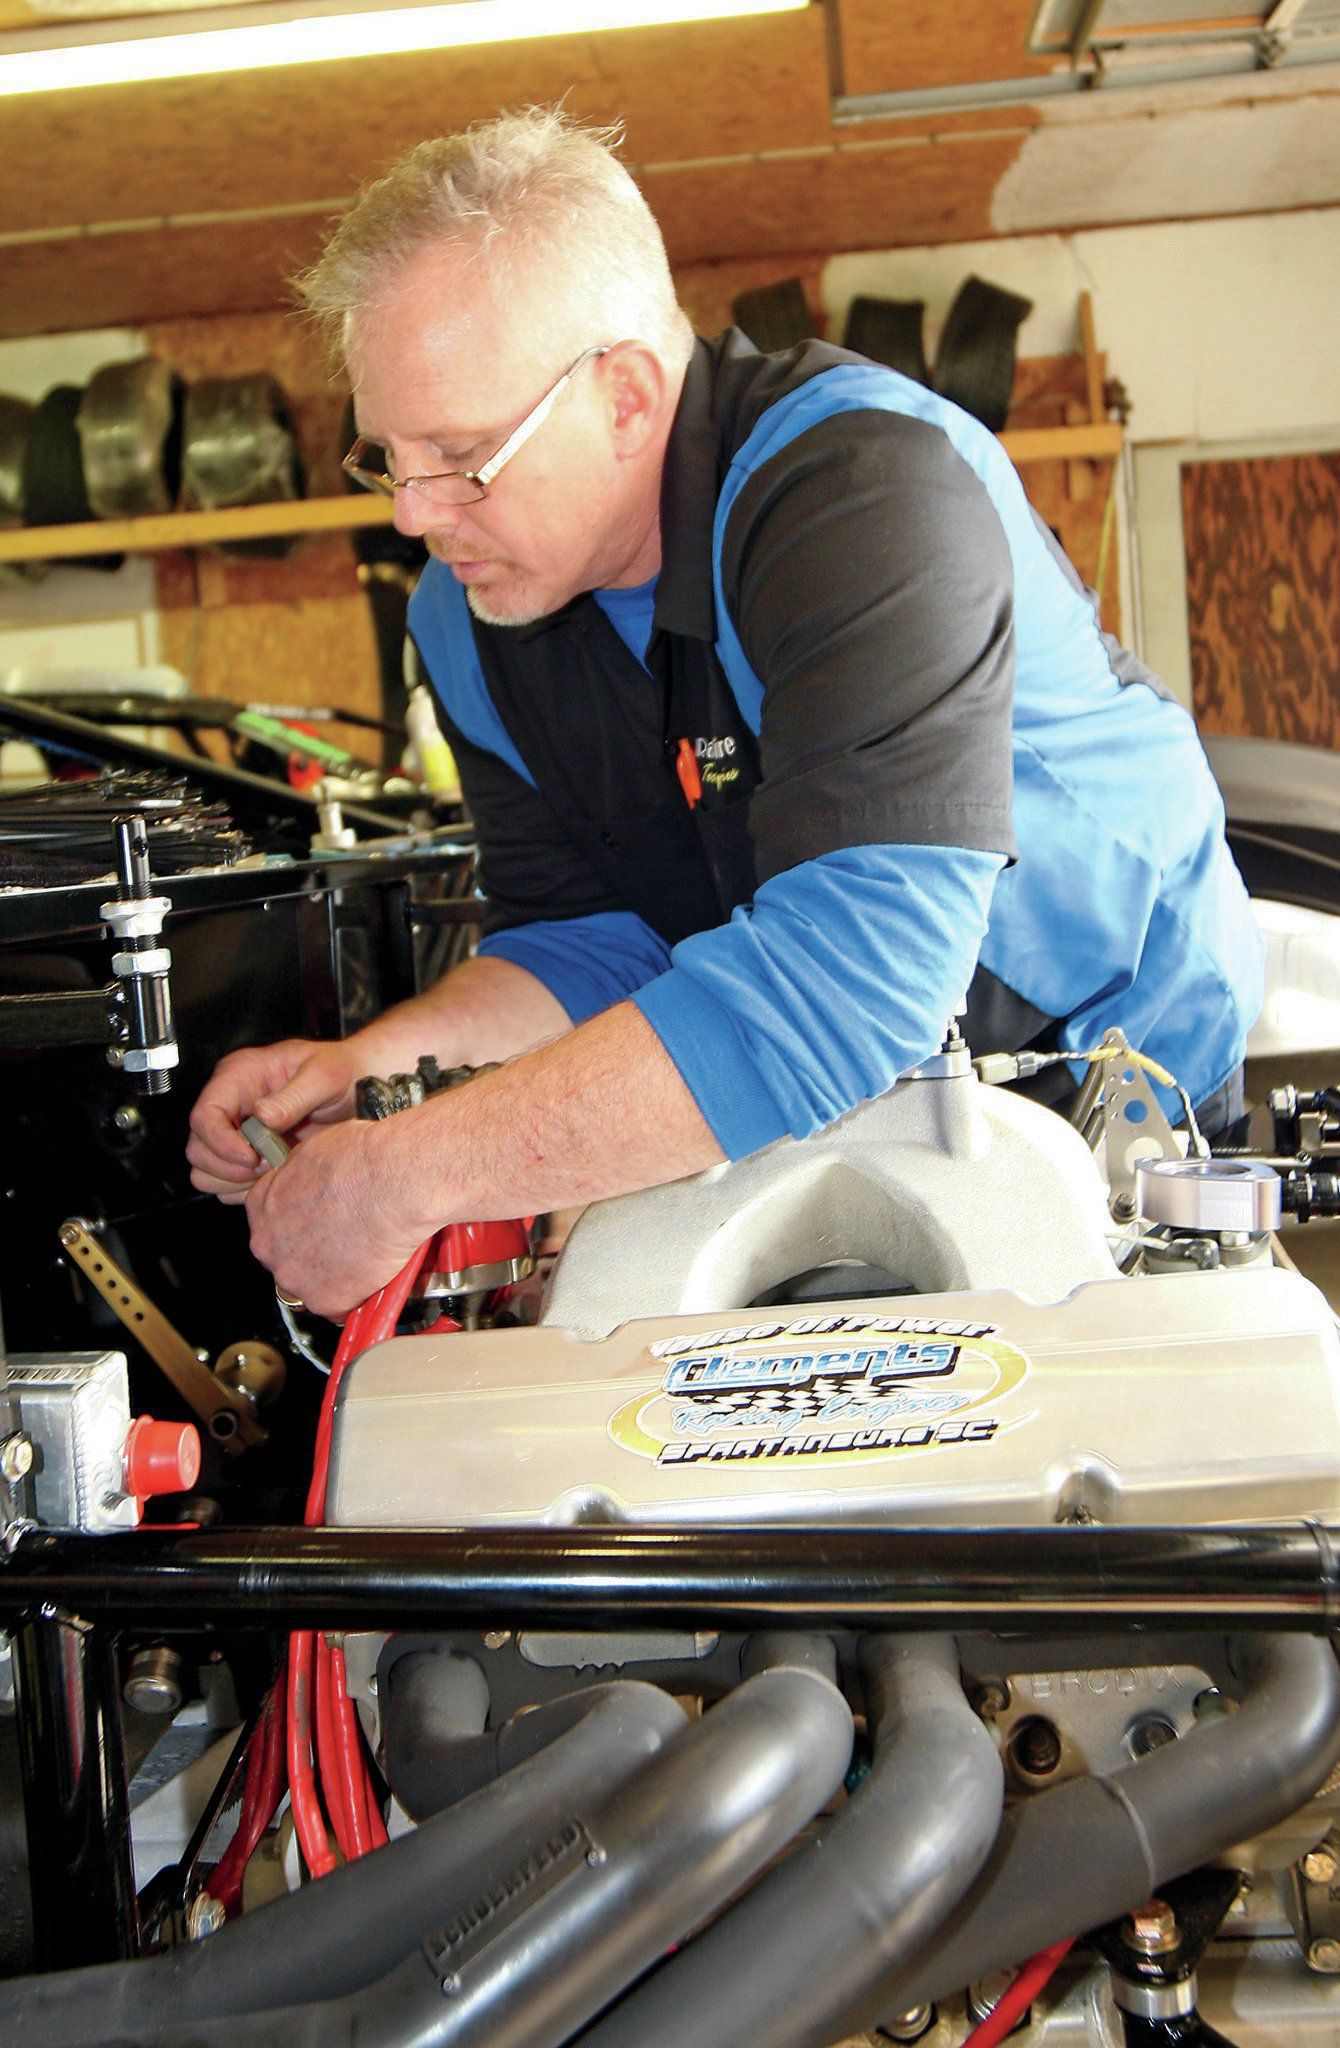 Wiring a race car is a thankless task, but believe it or not, some people are actually good at it. Rick Elgin of RaceWire Technologies is one of those people, and he was willing to share his secrets with us.